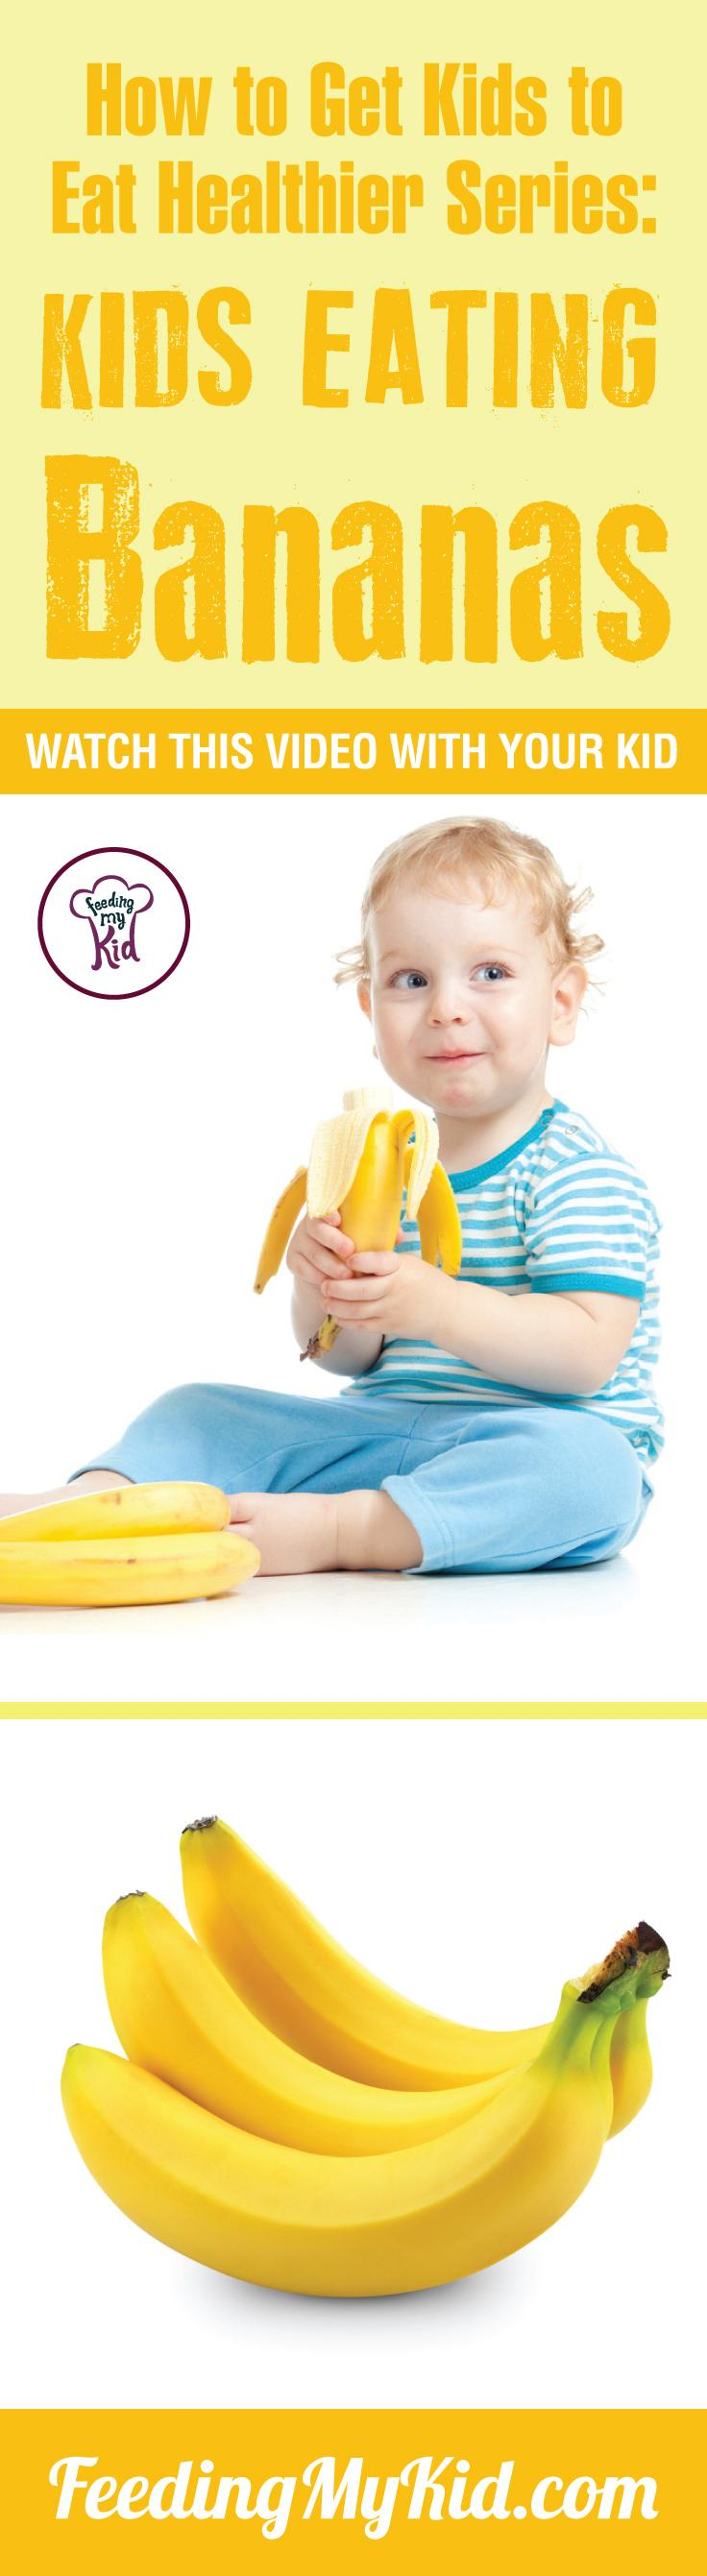 This is a must pin! Want your kids to eat bananas? Teach your kids how to eat more vegetables and fruits. Watch these videos with your kids of kids eating veggies and fruits and get your kids to eat veggies and fruits. Find out how it works here. Feeding My Kid is a filled with all the information you need about how to raise your kids, from healthy tips to nutritious recipes. #pickyeating #getkidstoeat #bananas